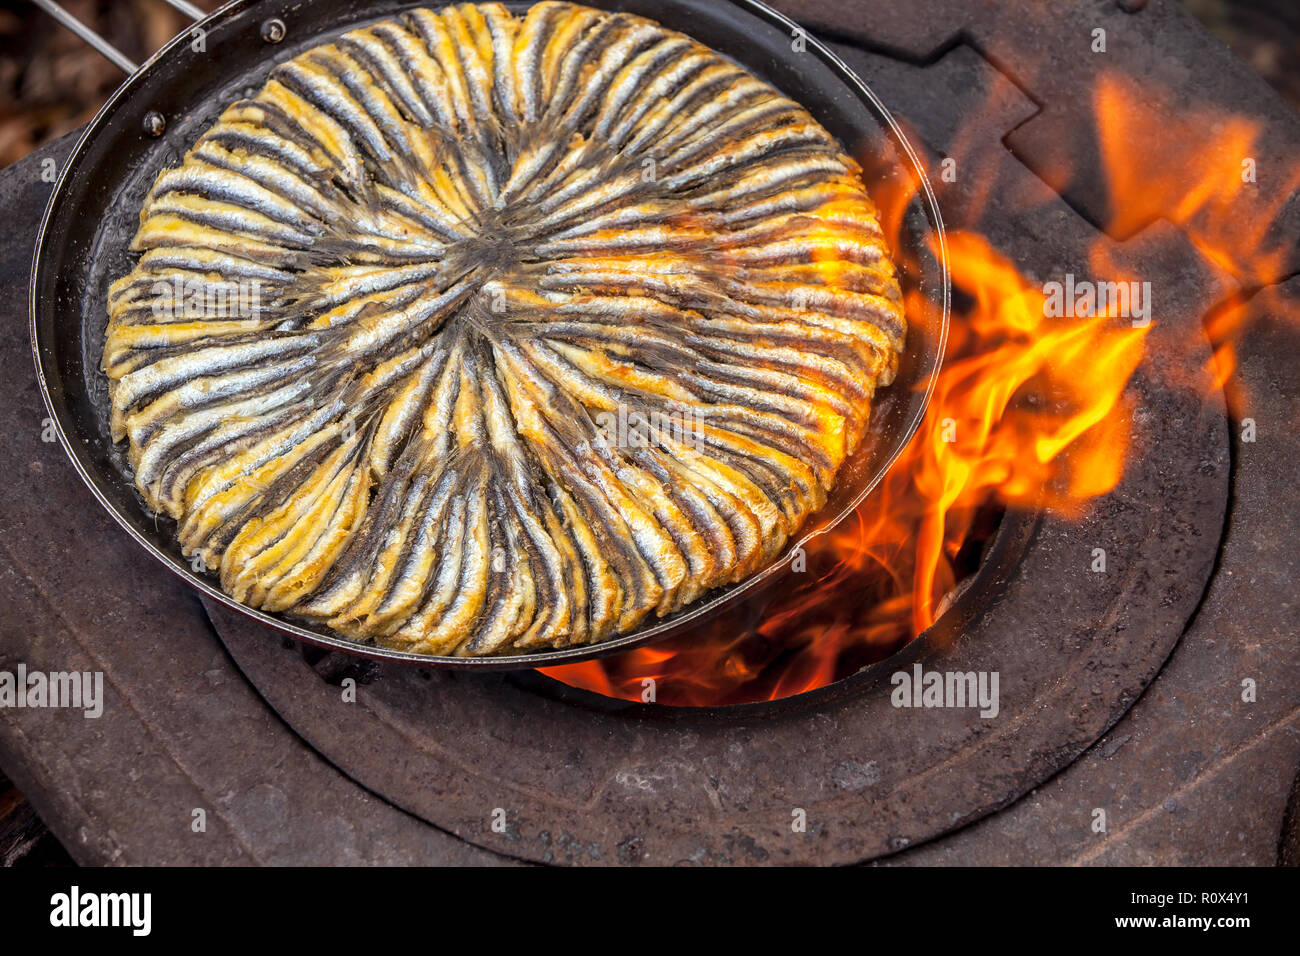 fish in frying pan, on old stove - Stock Image